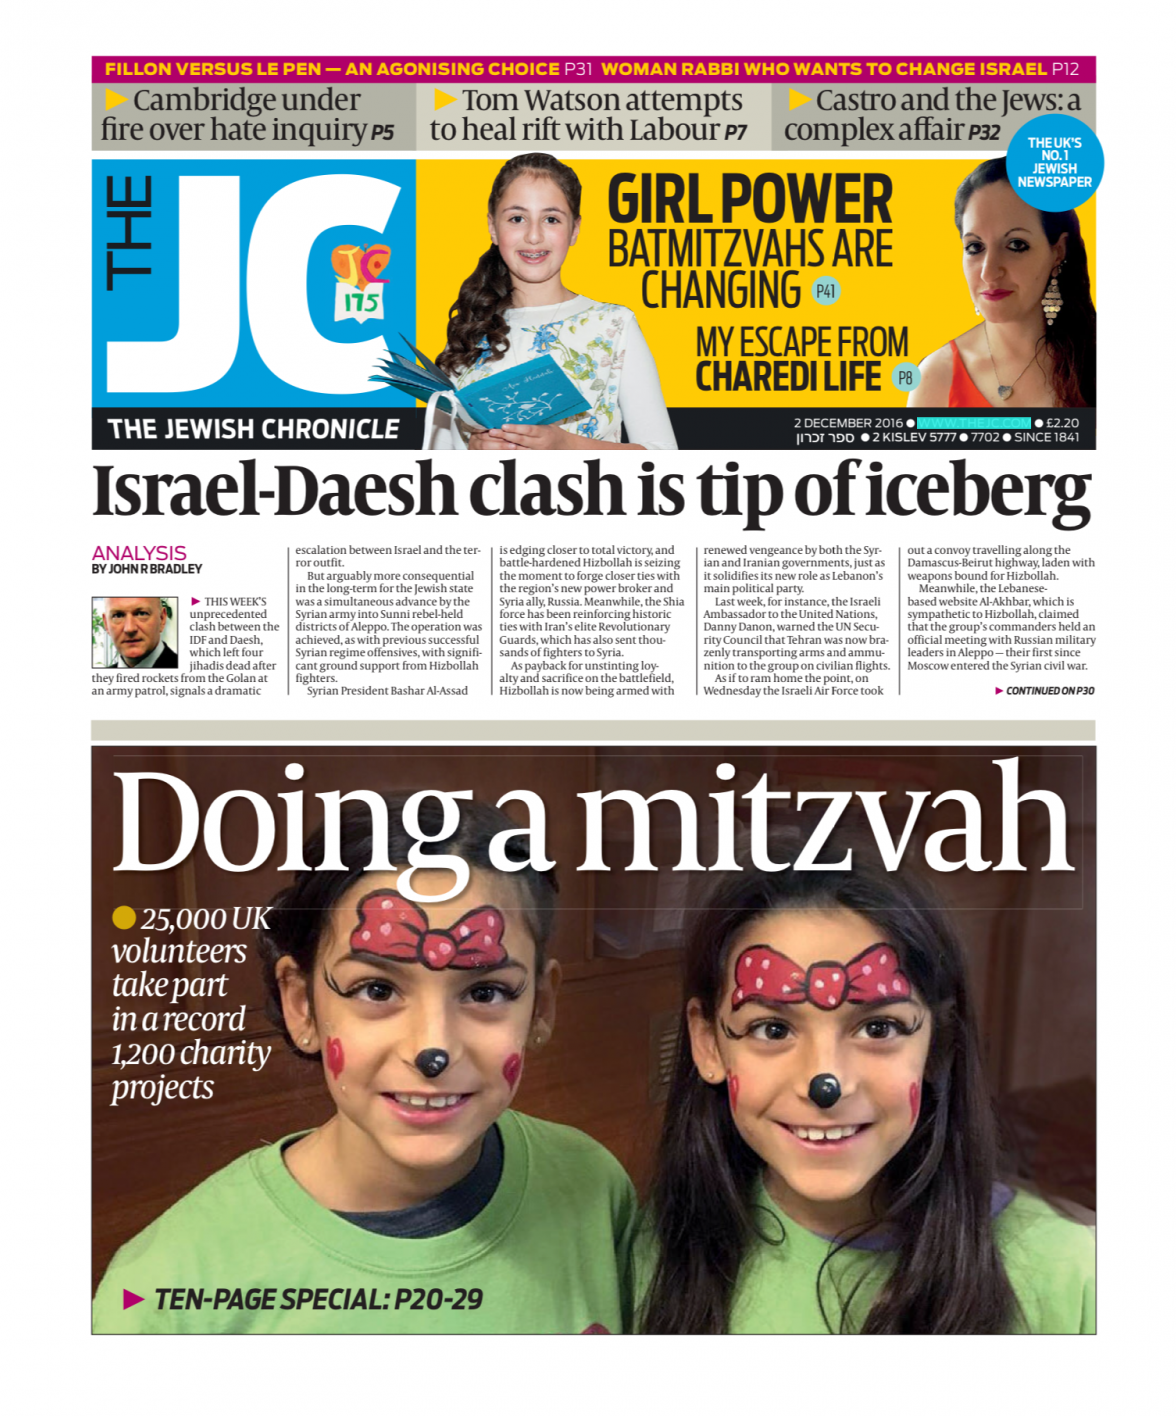 Mitzvah Day 2016 on front page of The Jewish Chronicle